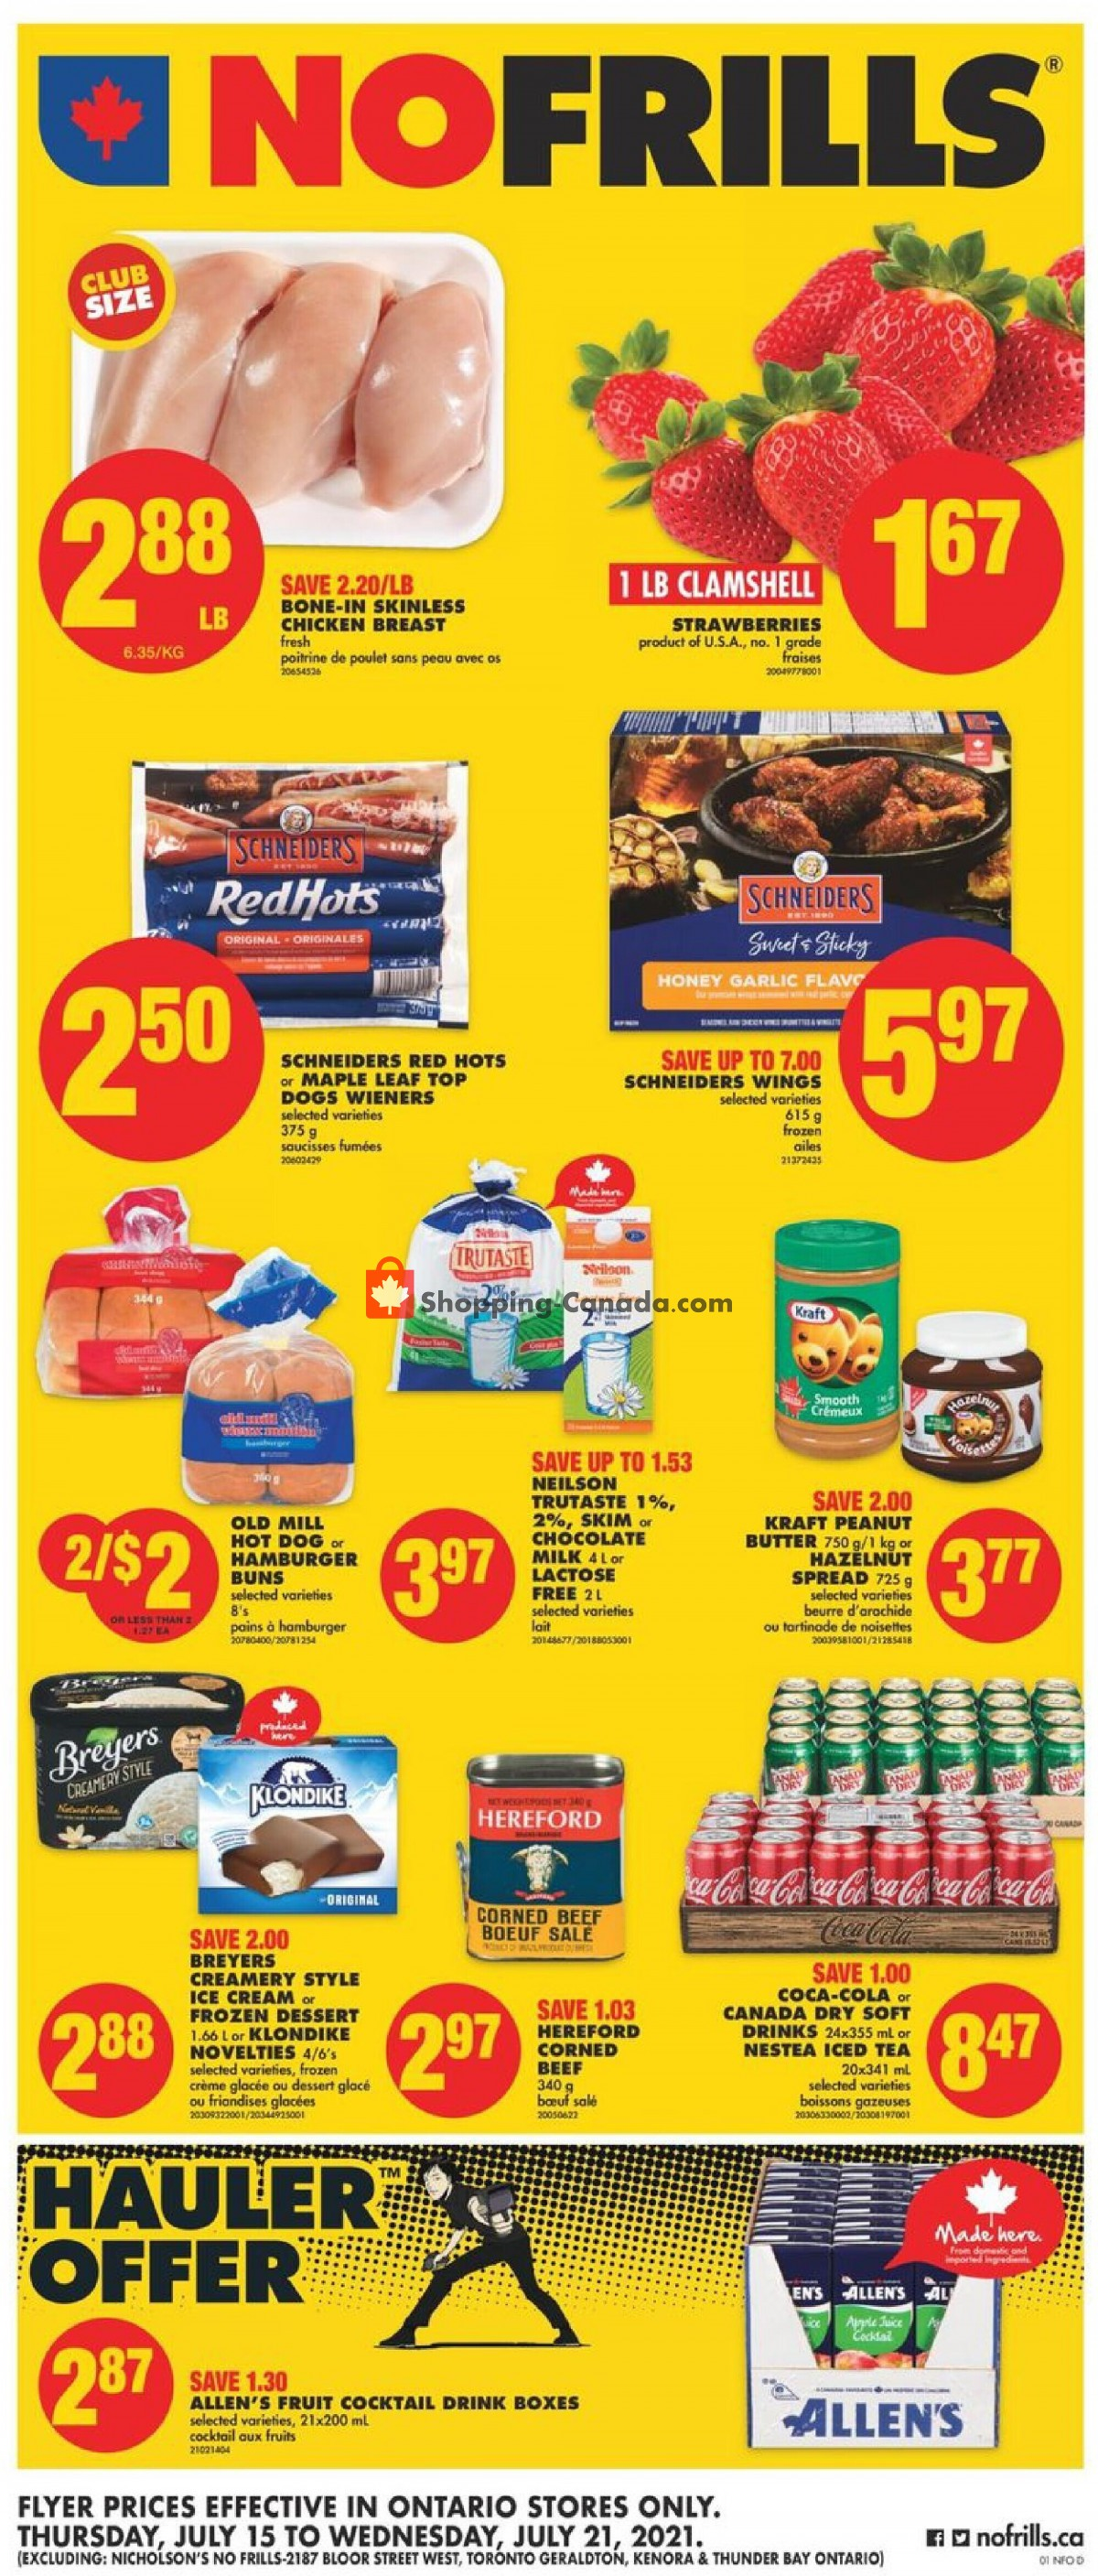 Flyer No Frills Canada - from Thursday July 15, 2021 to Wednesday July 21, 2021